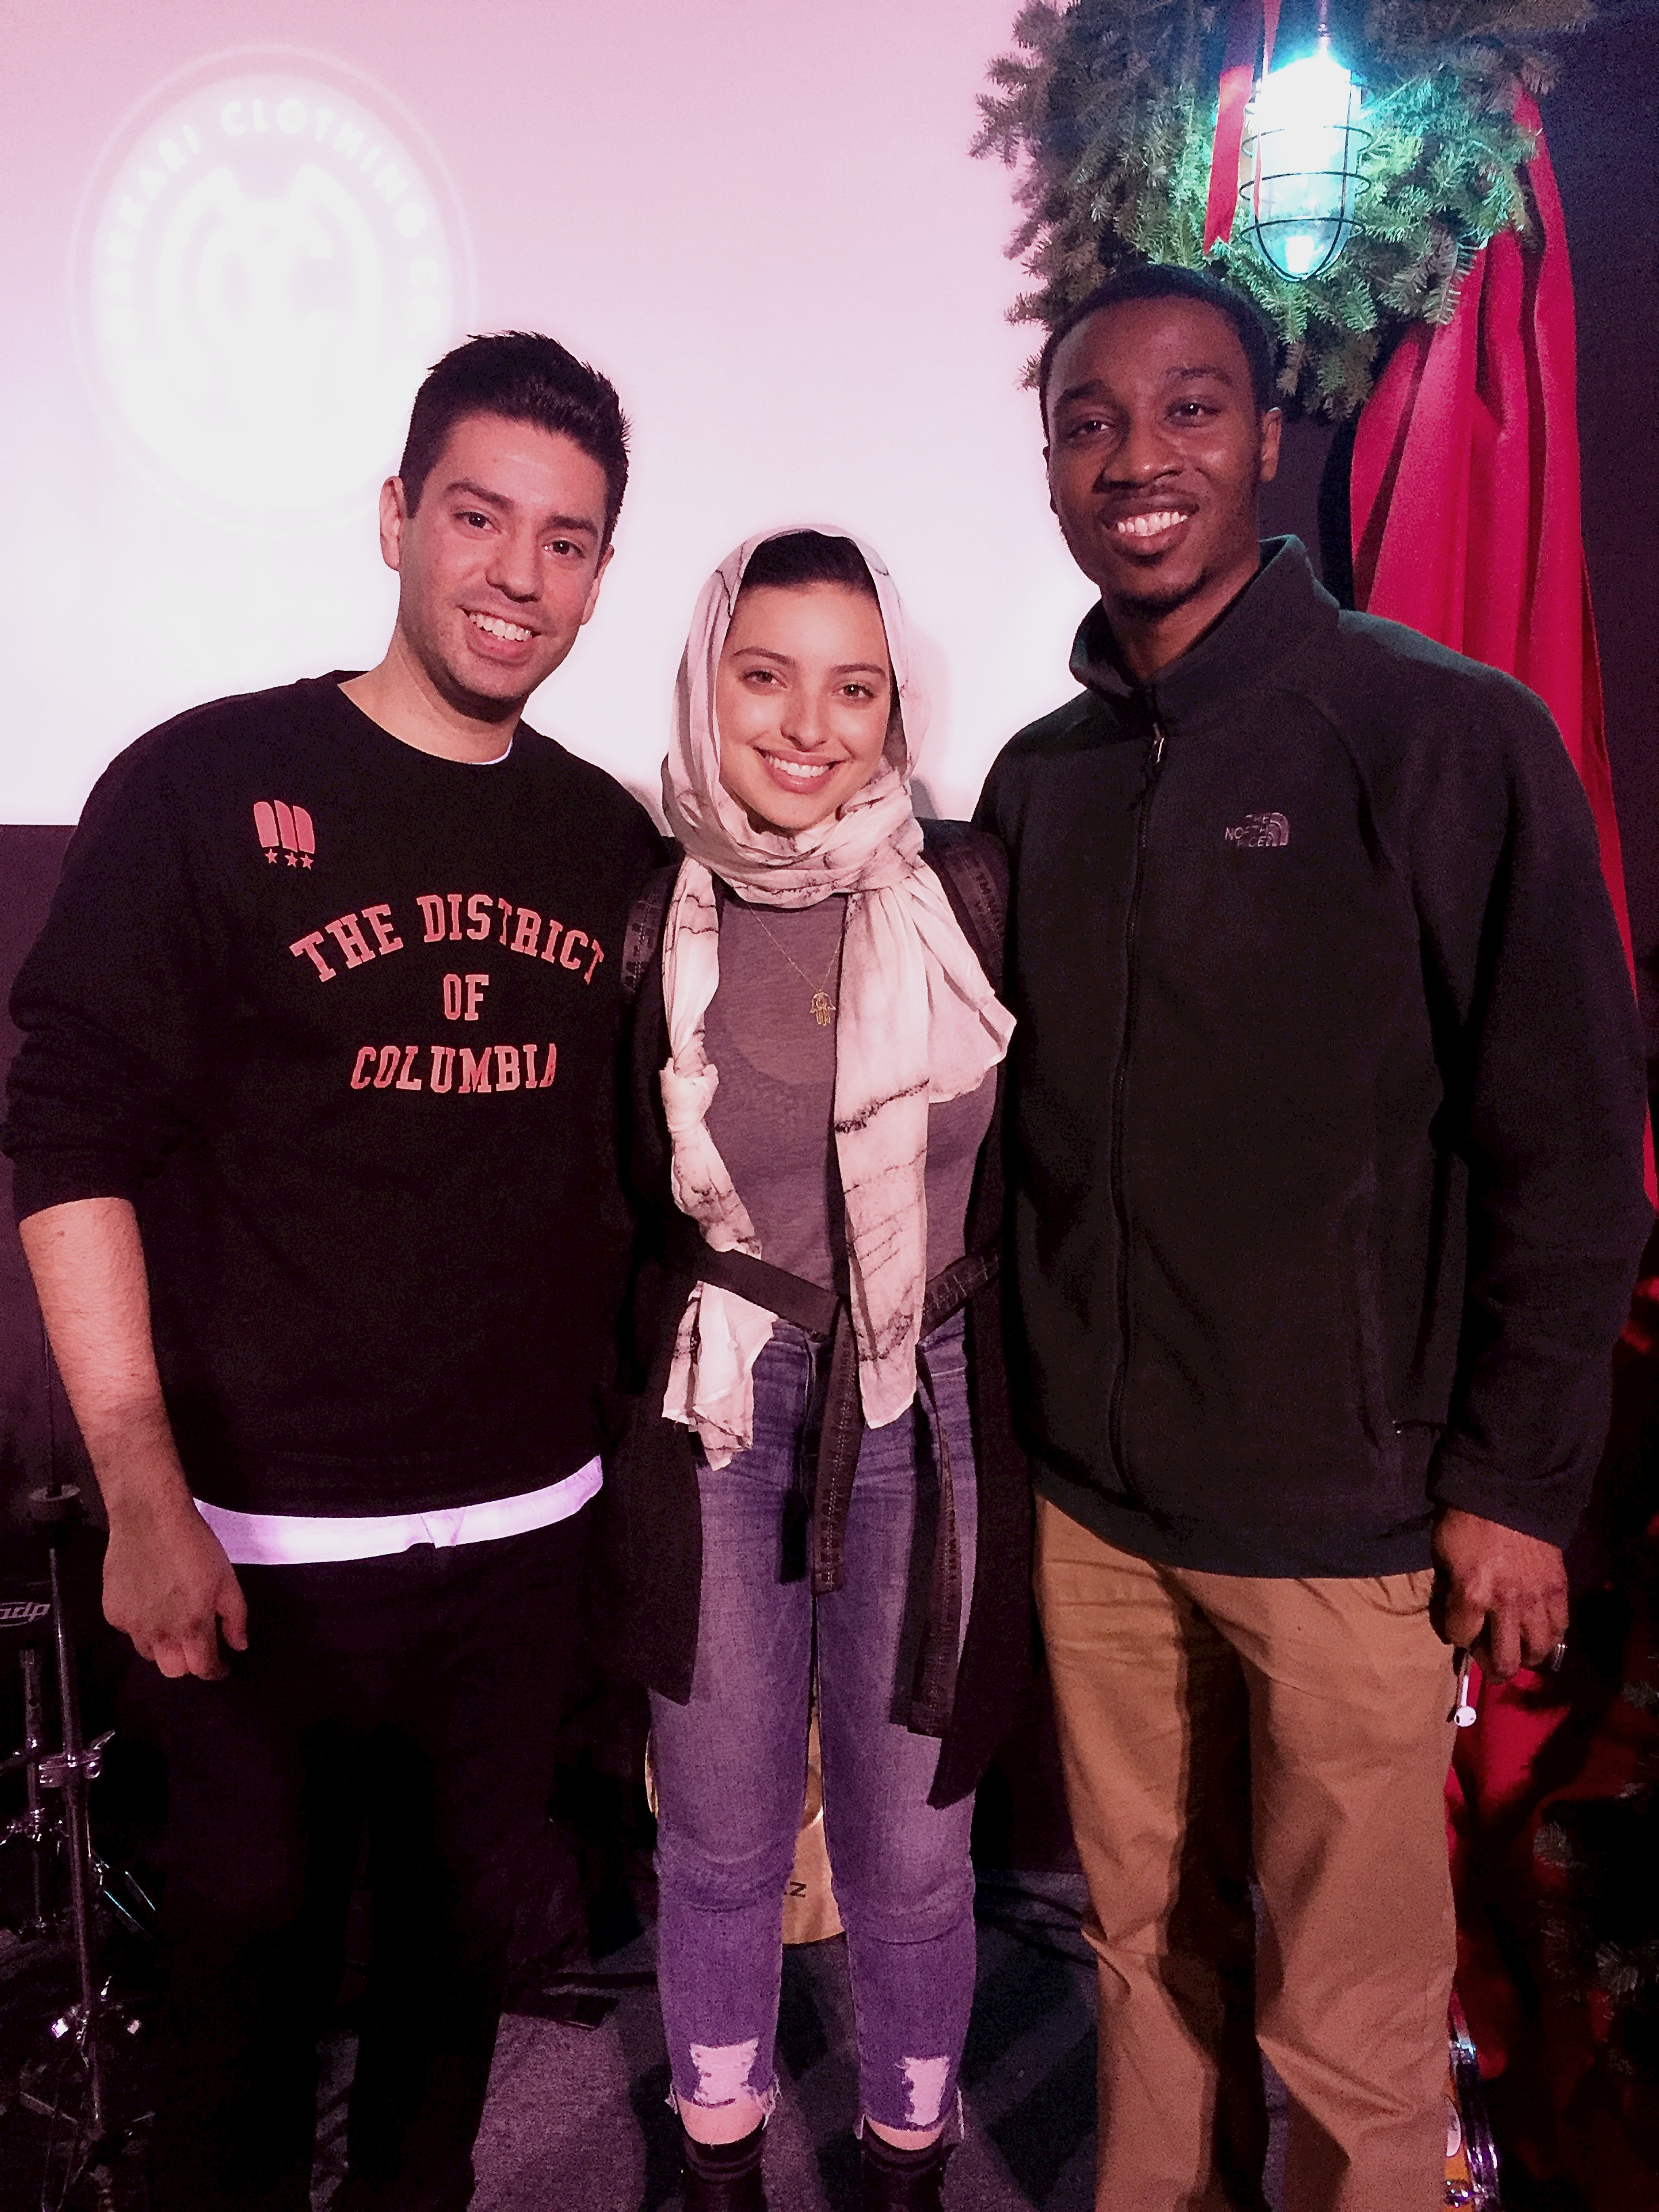 Thank you Noor Tagouri and Phil Lewis for supporting our show!!!